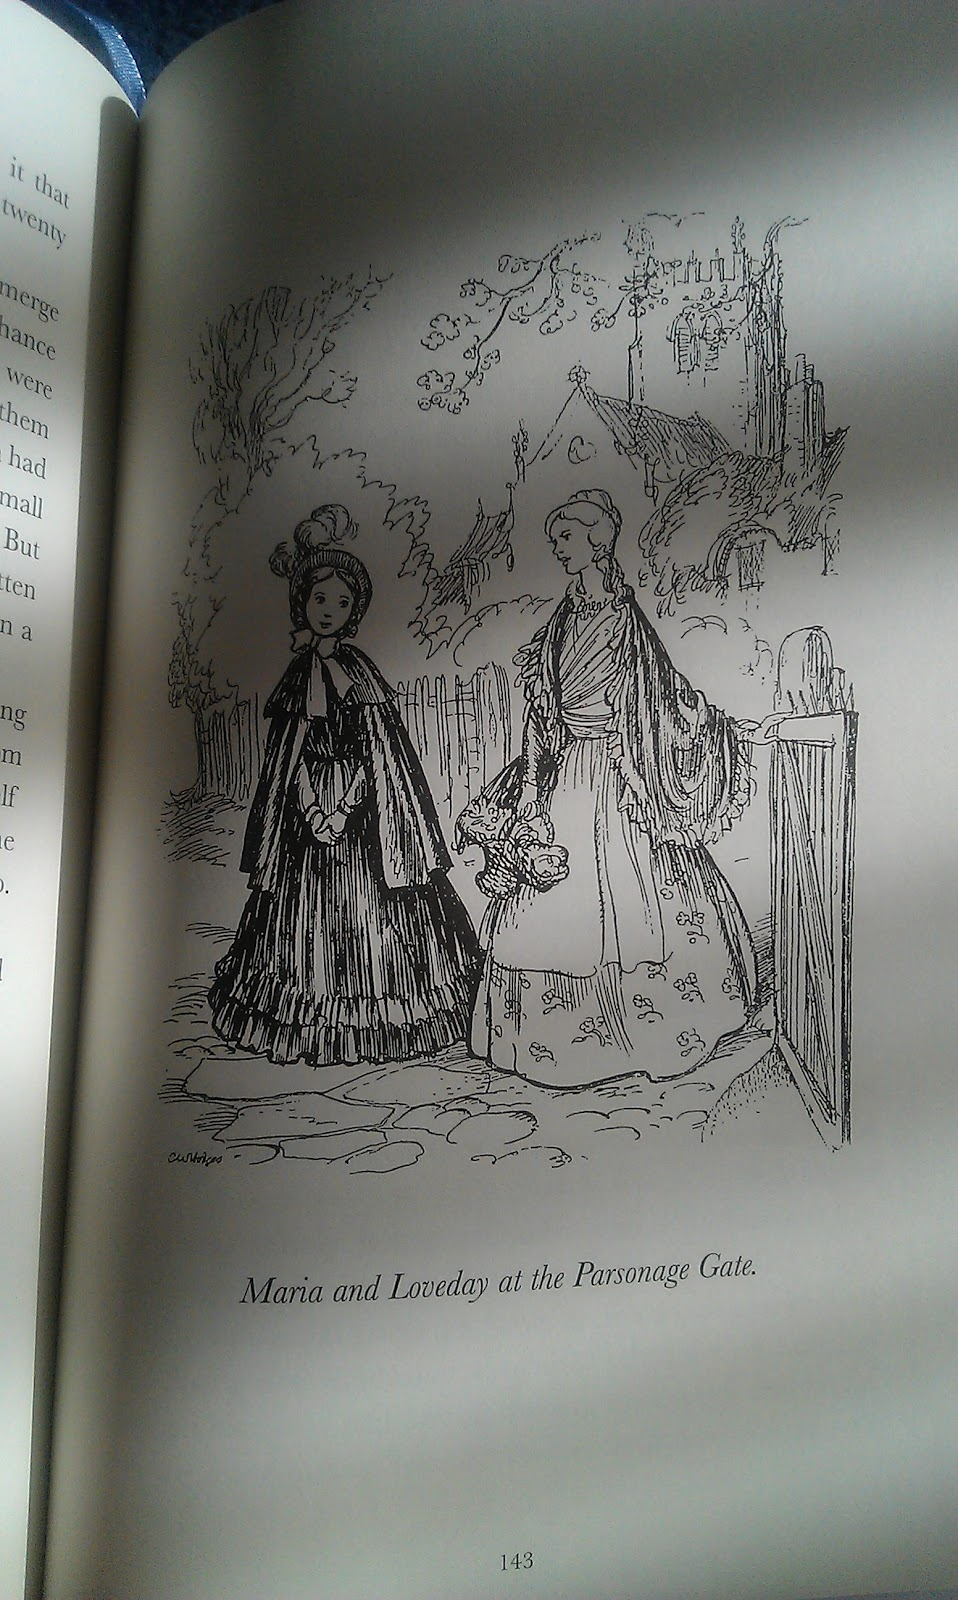 The Book Is Also Illustrated Throughout With Old Fashioned Line Drawings  The Book Was Originally Written In 1946 And I Believe These Are The  Original